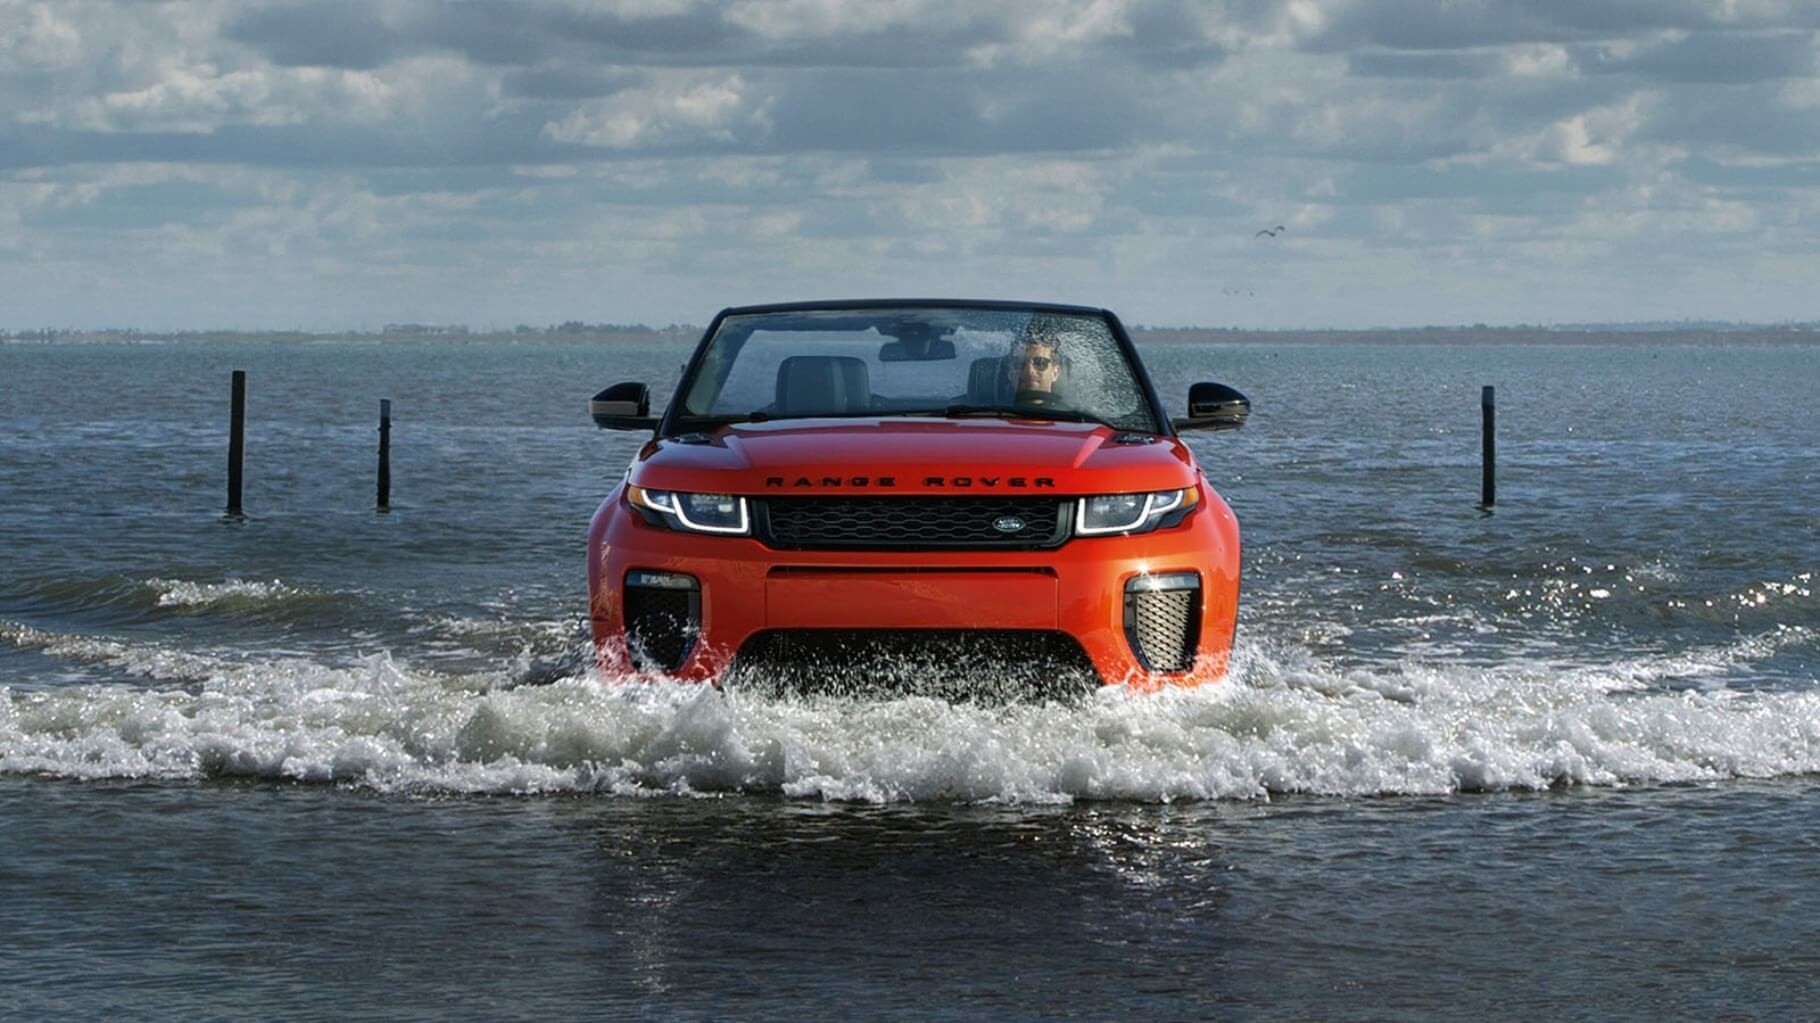 2017 Land Rover Range Rover Evoque Convertible driving through water